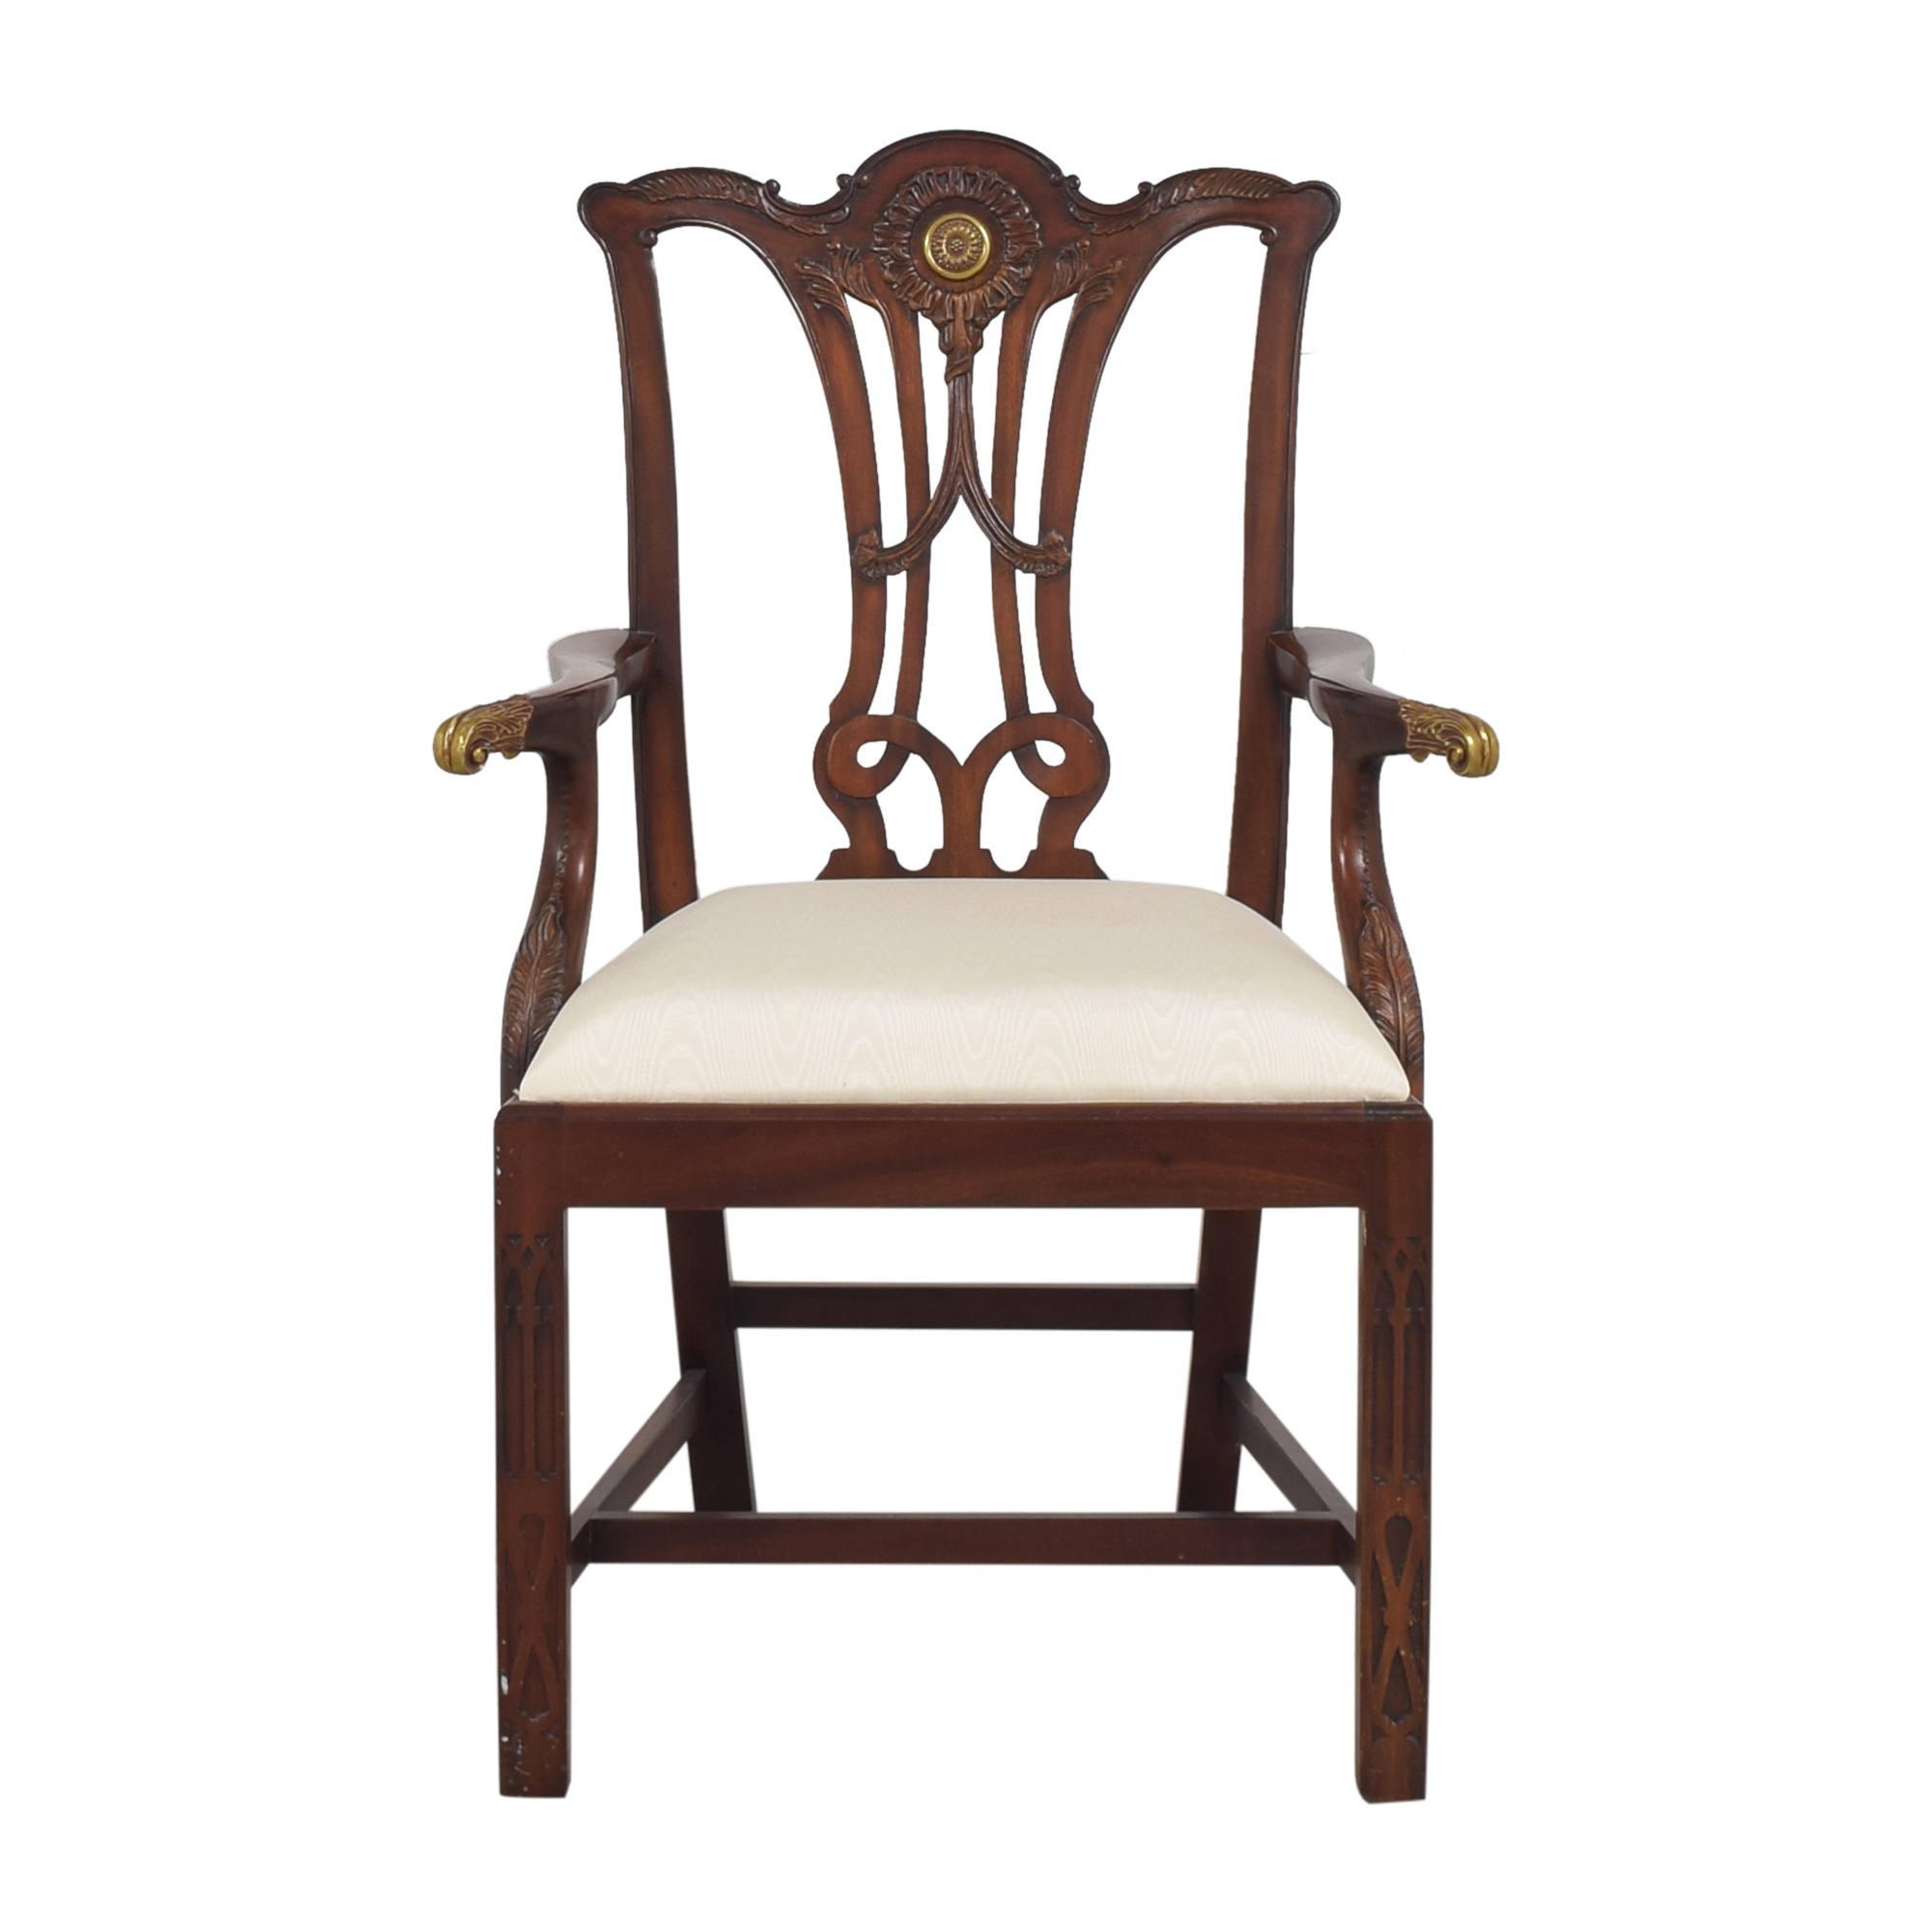 Maitland-Smith Maitland-Smith Carved Arm Chair Accent Chairs